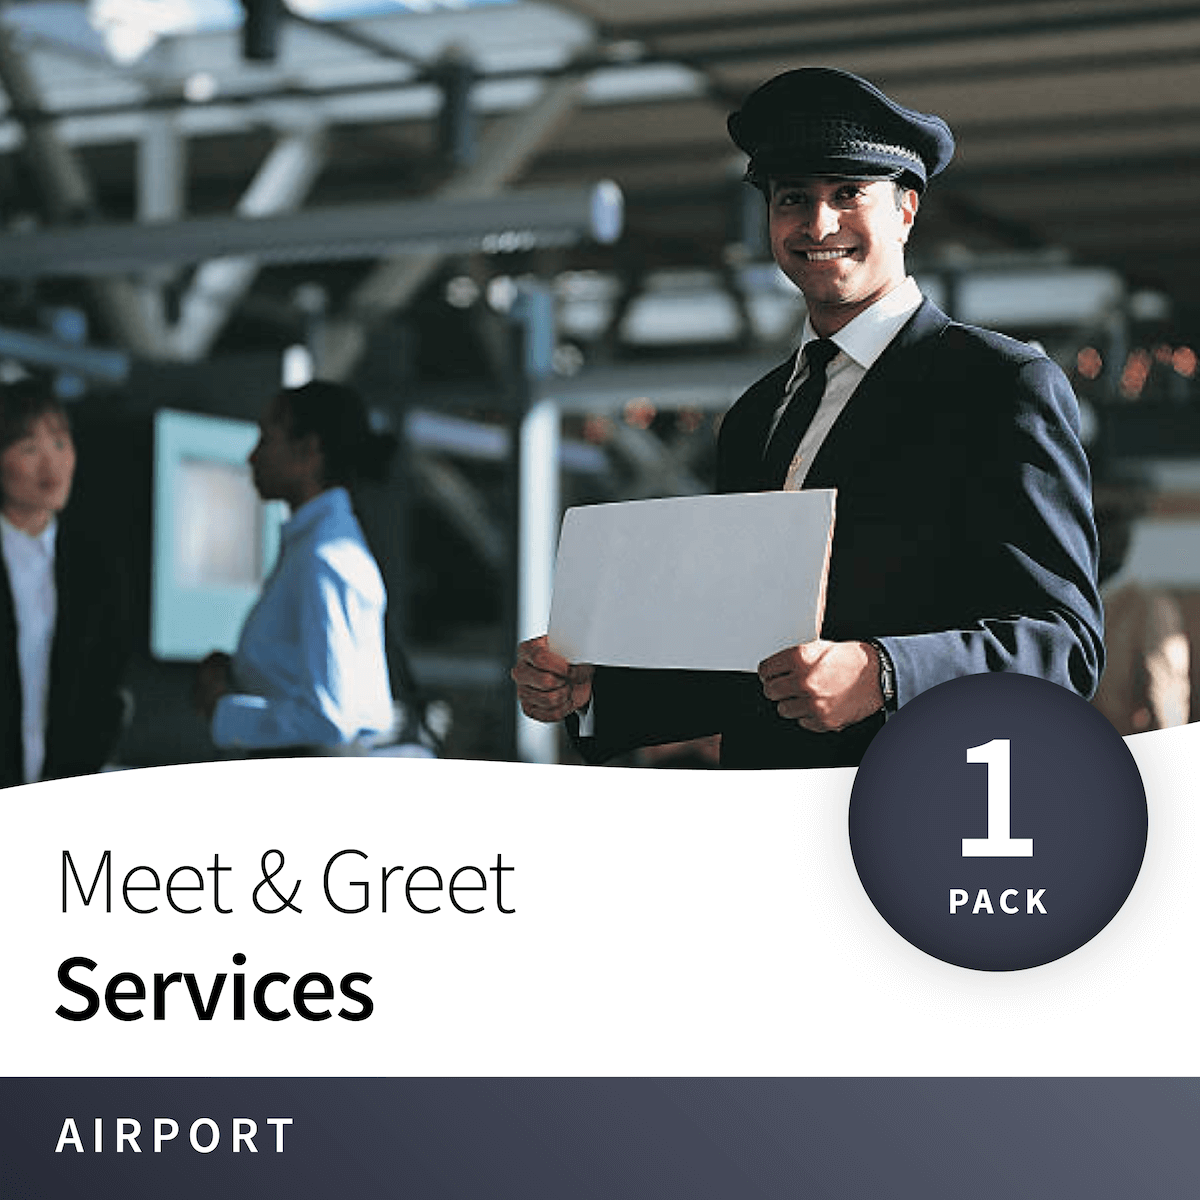 Meet & Greet Services 5